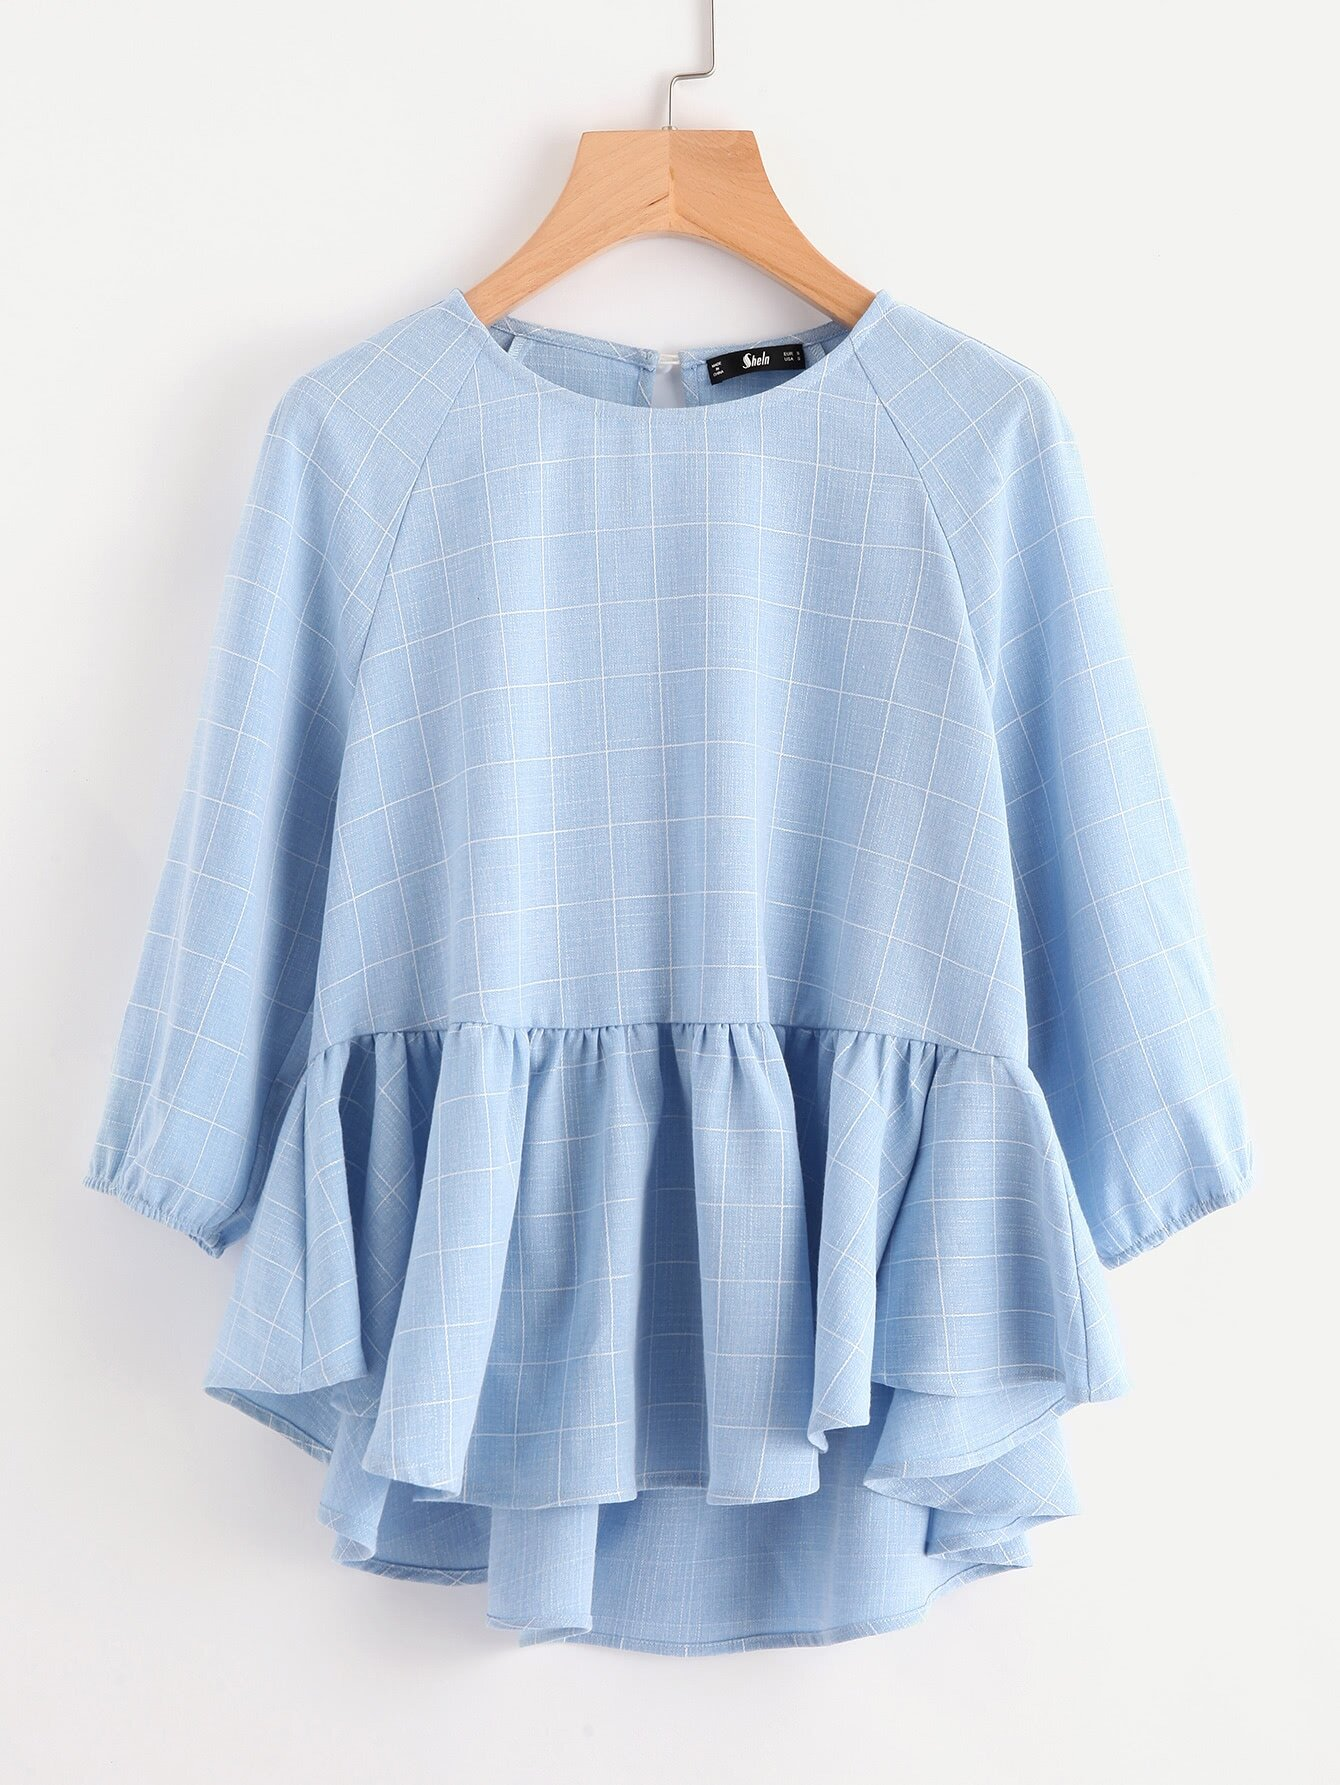 http://de.shein.com/Raglan-Sleeve-Ruffle-Dip-Hem-Grid-Blouse-p-385484-cat-1733.html?utm_source=lifefeminin&utm_medium=blogger&url_from=lifefeminin